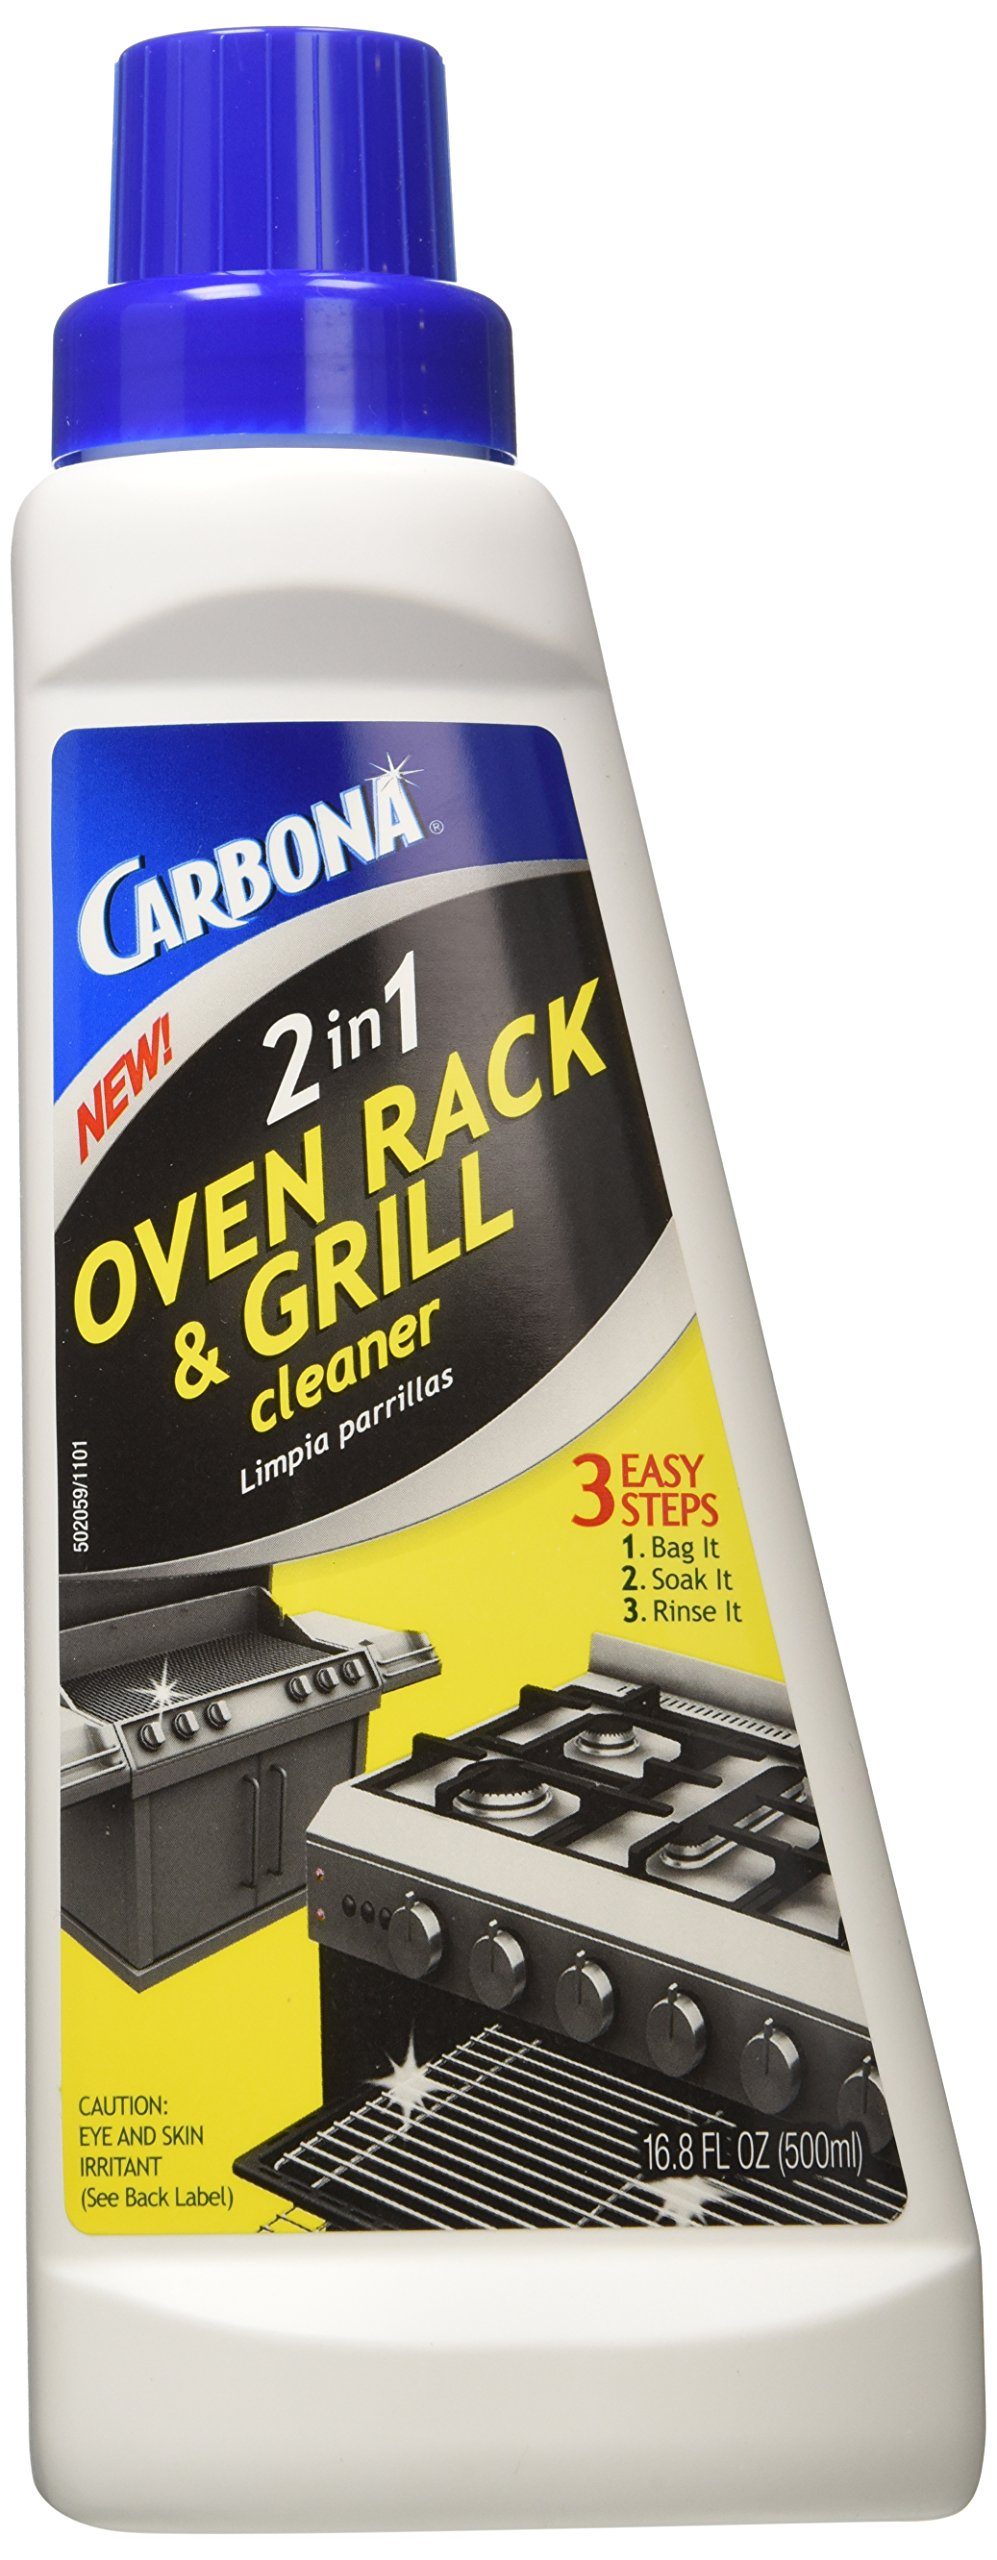 Carbona 320 Carbona 2-In 1 Oven Rack And Barbeque Cleaner 500ml by Carbona